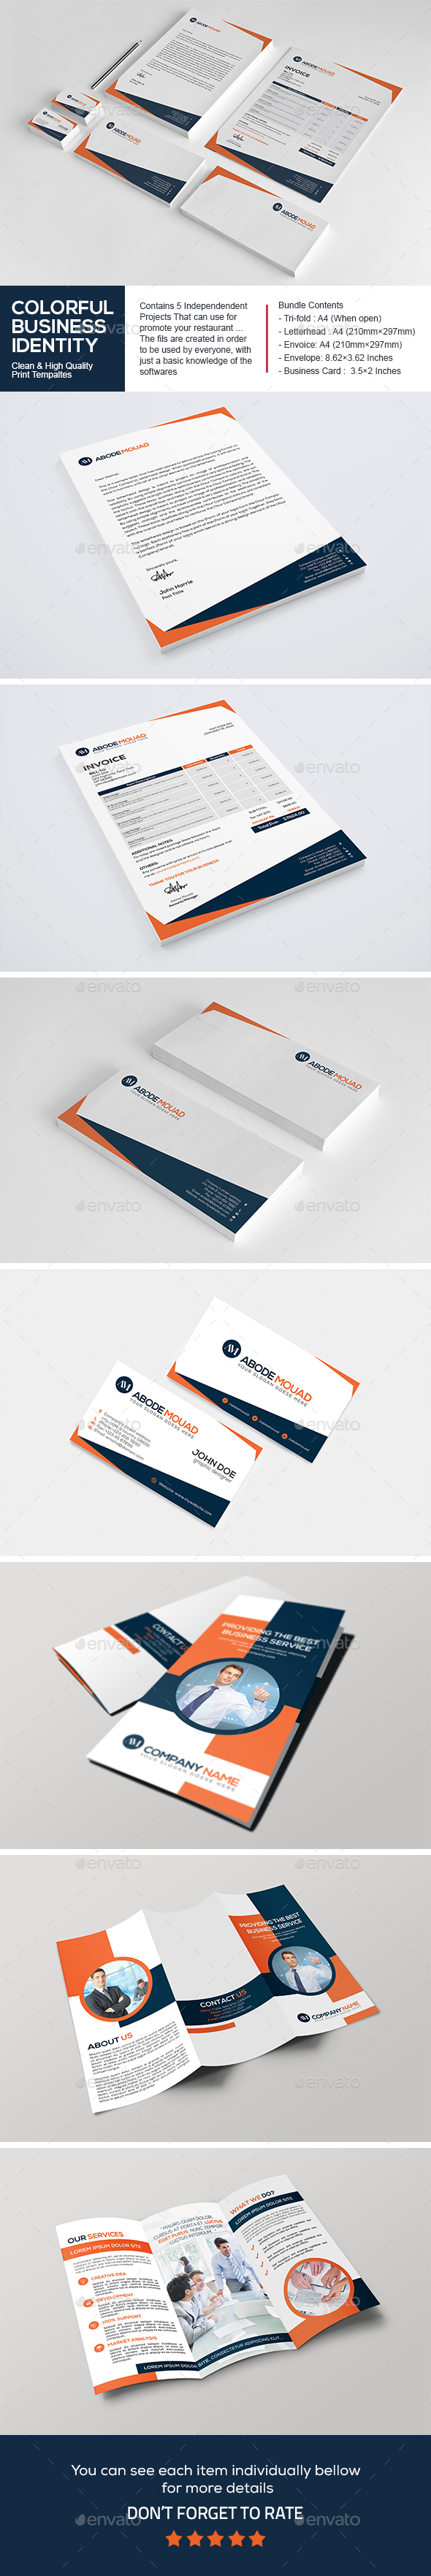 Colorful Business Identity Bundle - Stationery Print Templates